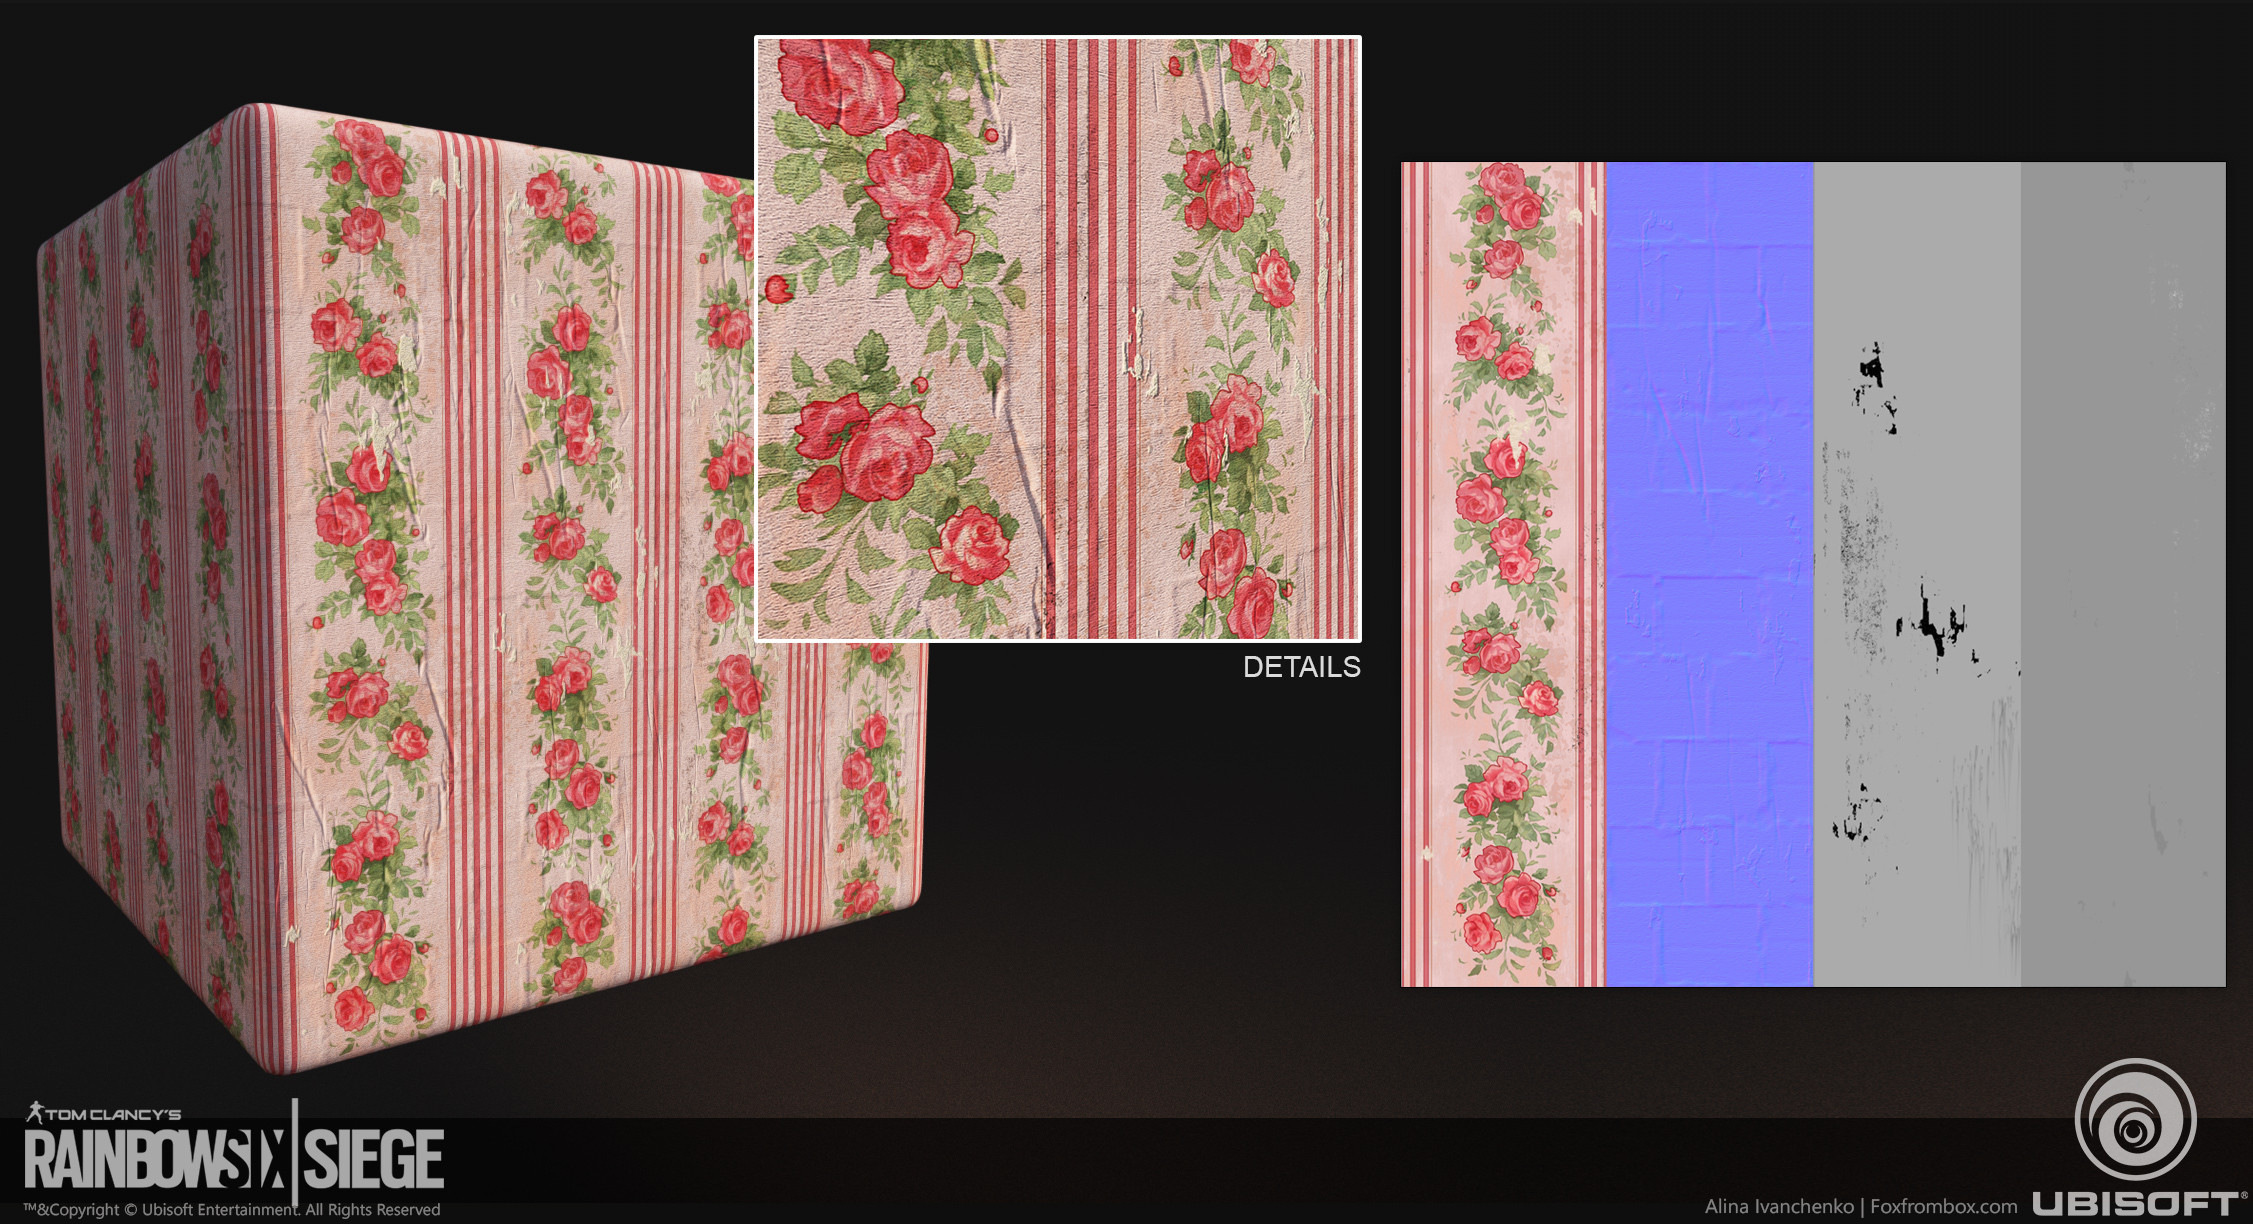 Rose wallpaper  I want to achive old Grand ma  wall papaer style  It ment to be glue over brick wall and blend with it with a blend mask  Ornament made by me as well.